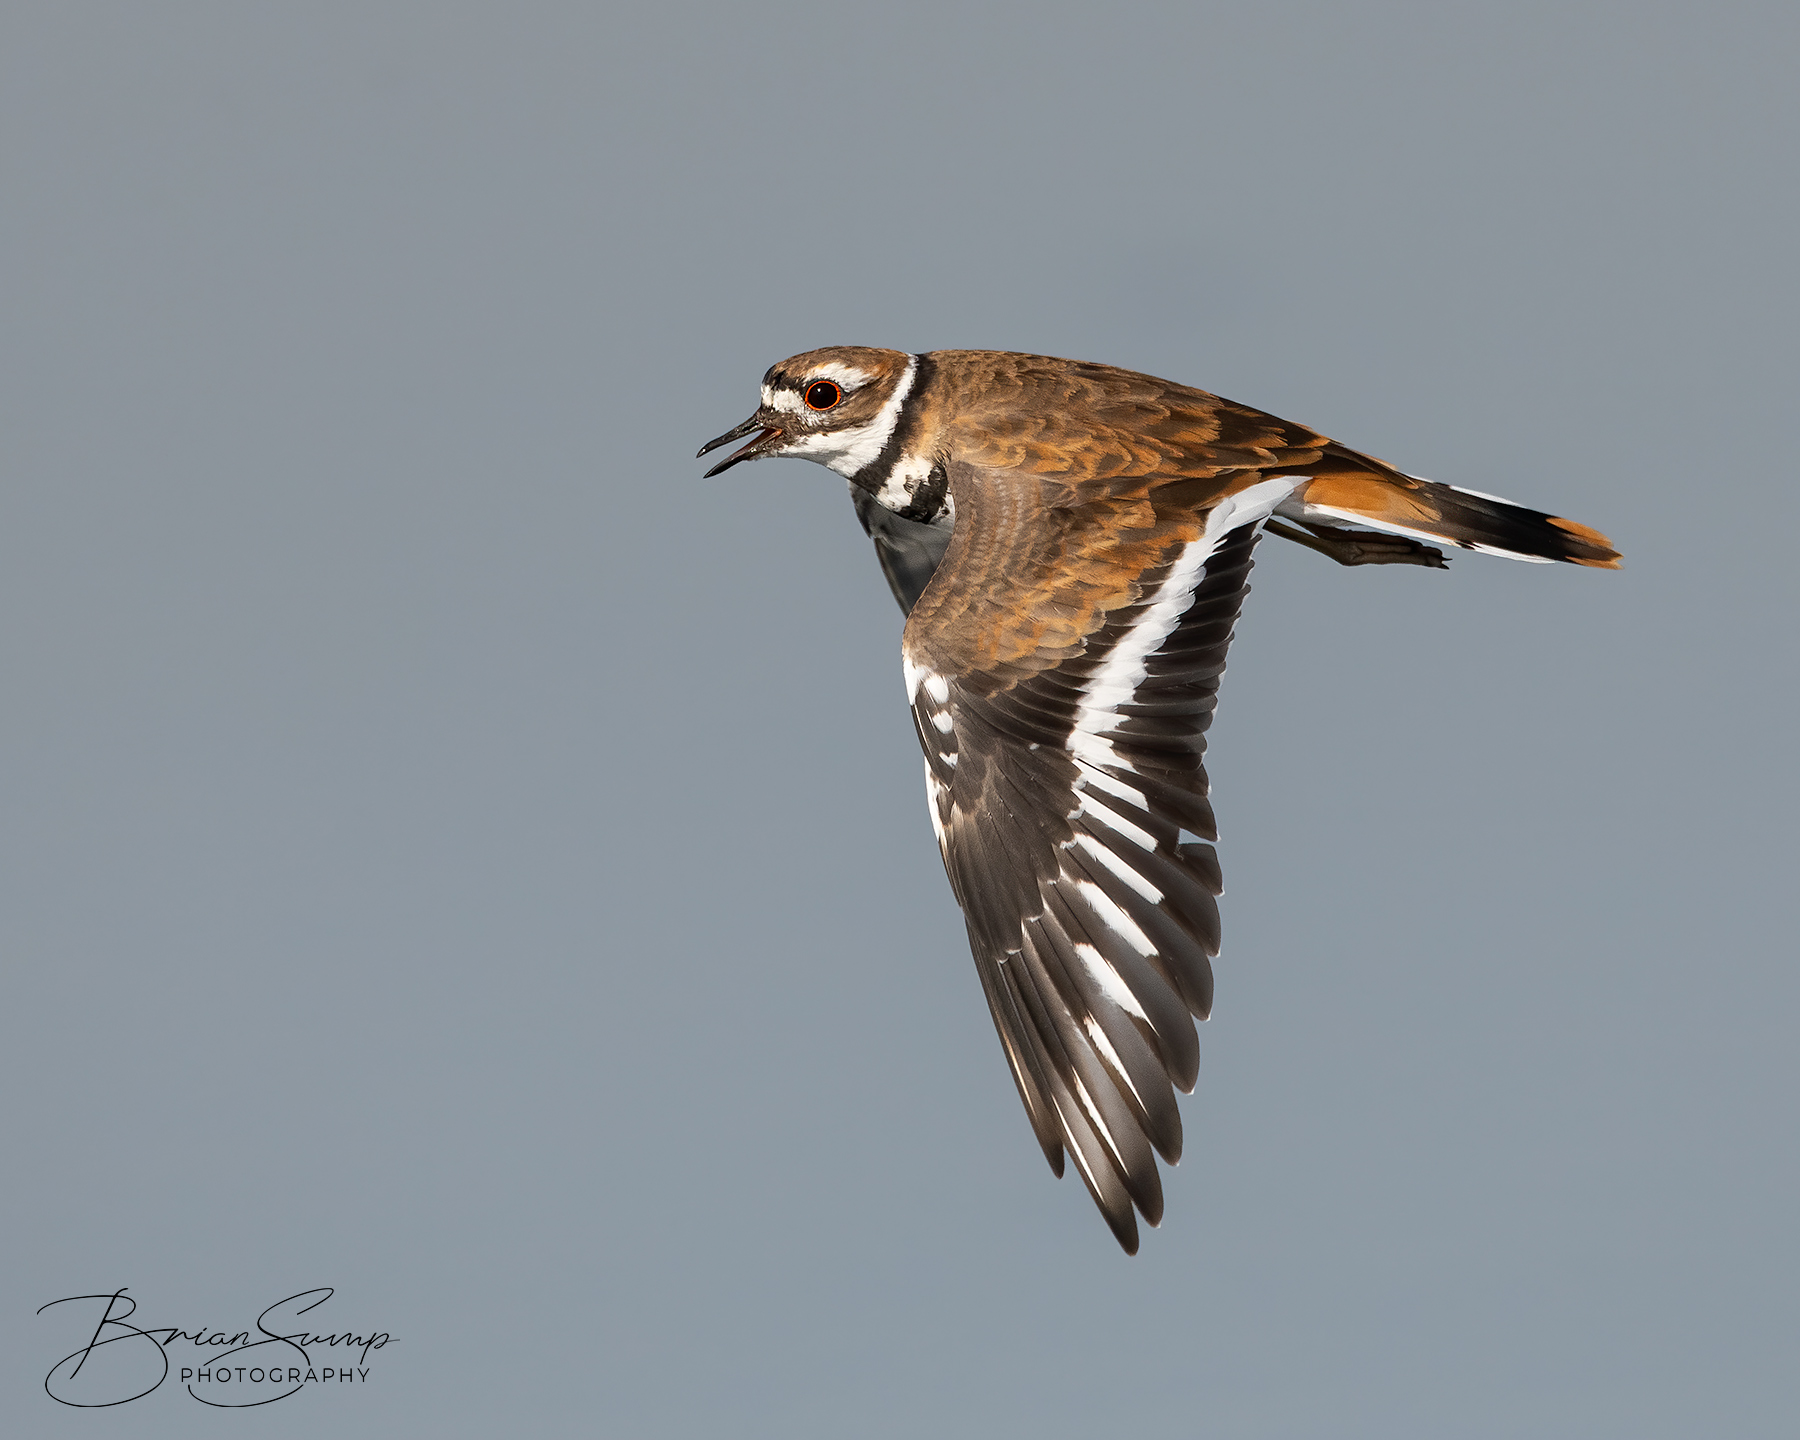 Name:  20200902-Killdeer-wingsdown-Brian-Sump_BMS4644-FORUM-SIG-SS35_.3-touch-brush.jpg